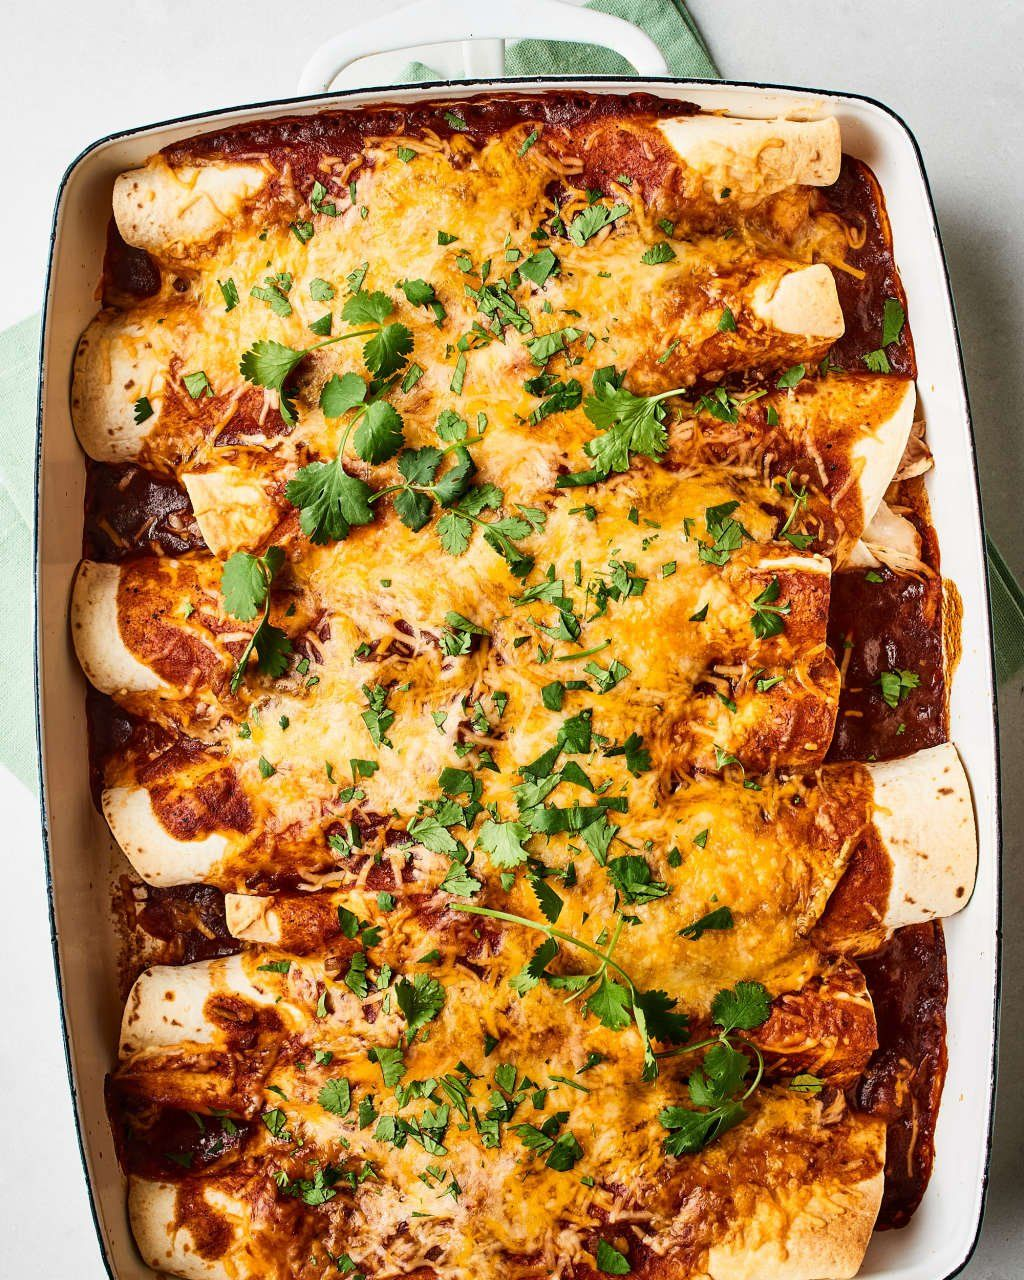 How To Make The Easiest Ever Chicken Enchiladas Recipe Chicken Enchiladas Easy Chicken Enchiladas Recipes